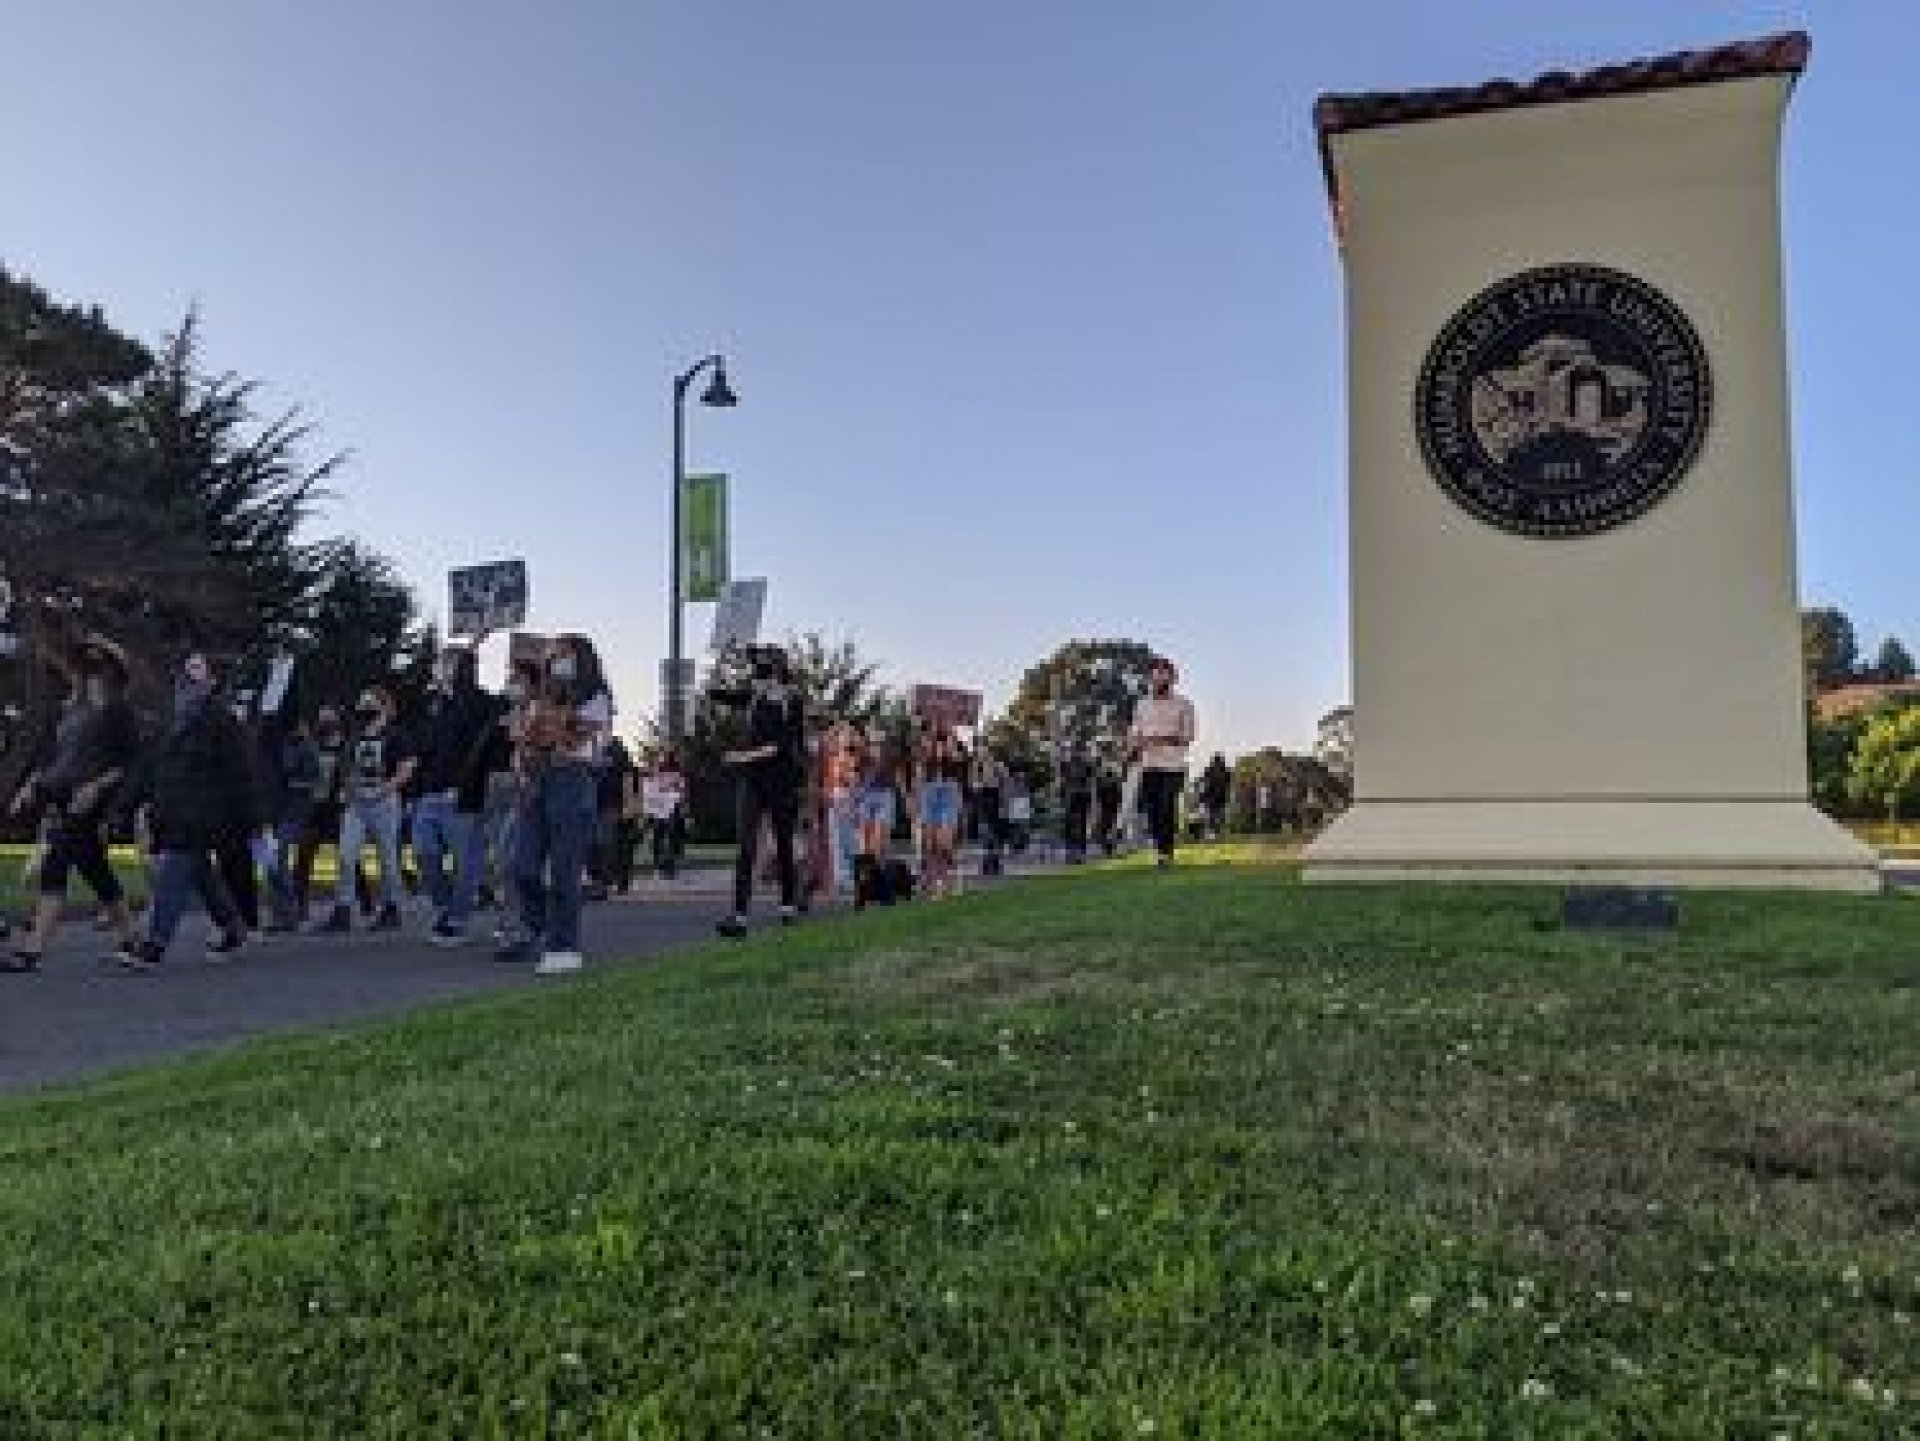 Demonstrators marching at the Defund HSU PD protest on Sept. 4 | Photo by Walker B. True